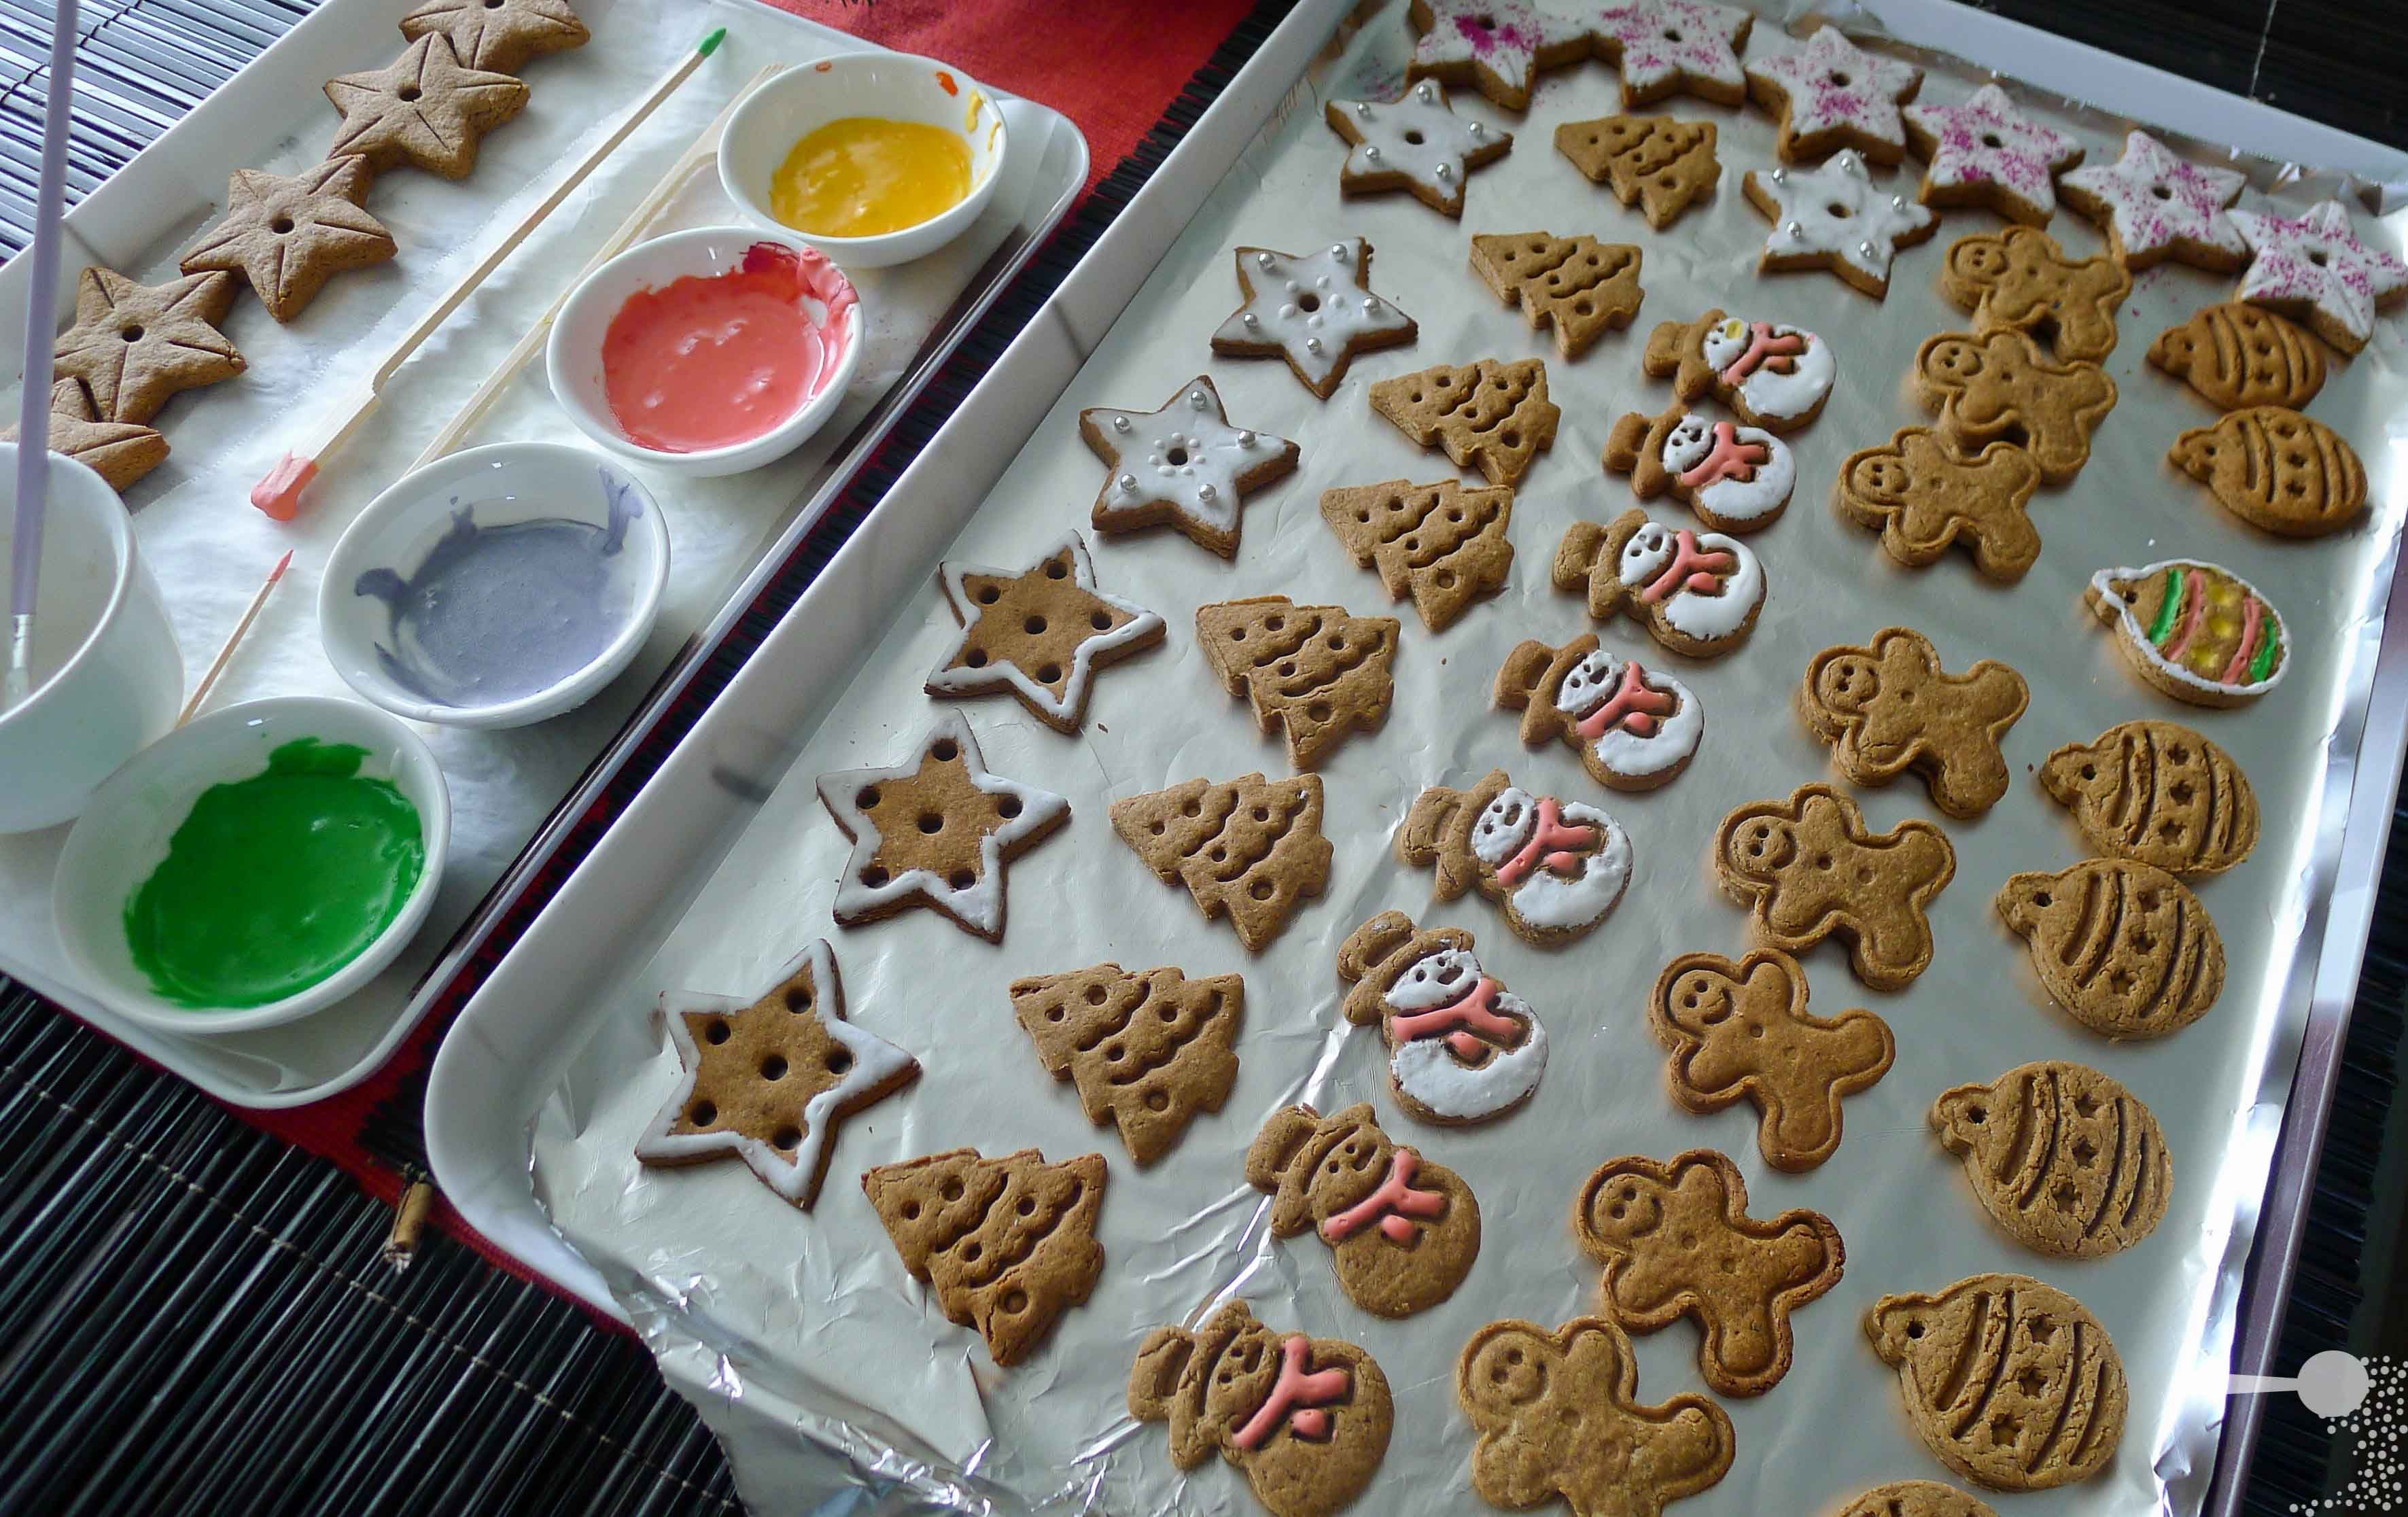 Gingerbread Spice Gingerbread Cookies and Gingerbread... Ice-cream! | Wholesome Cook